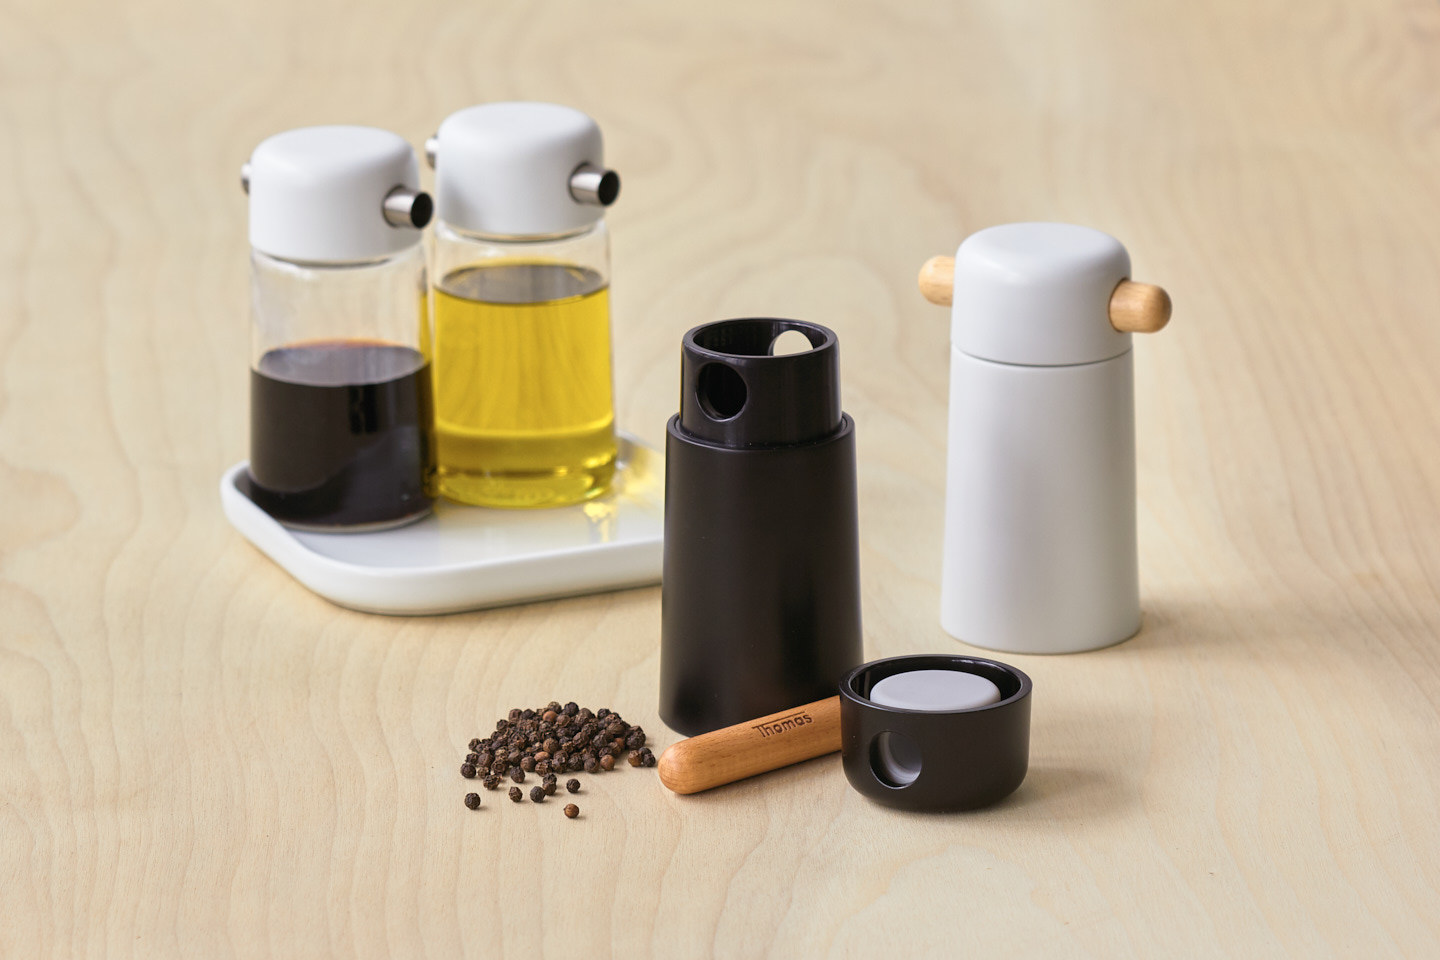 kitchenware collection - office for product design